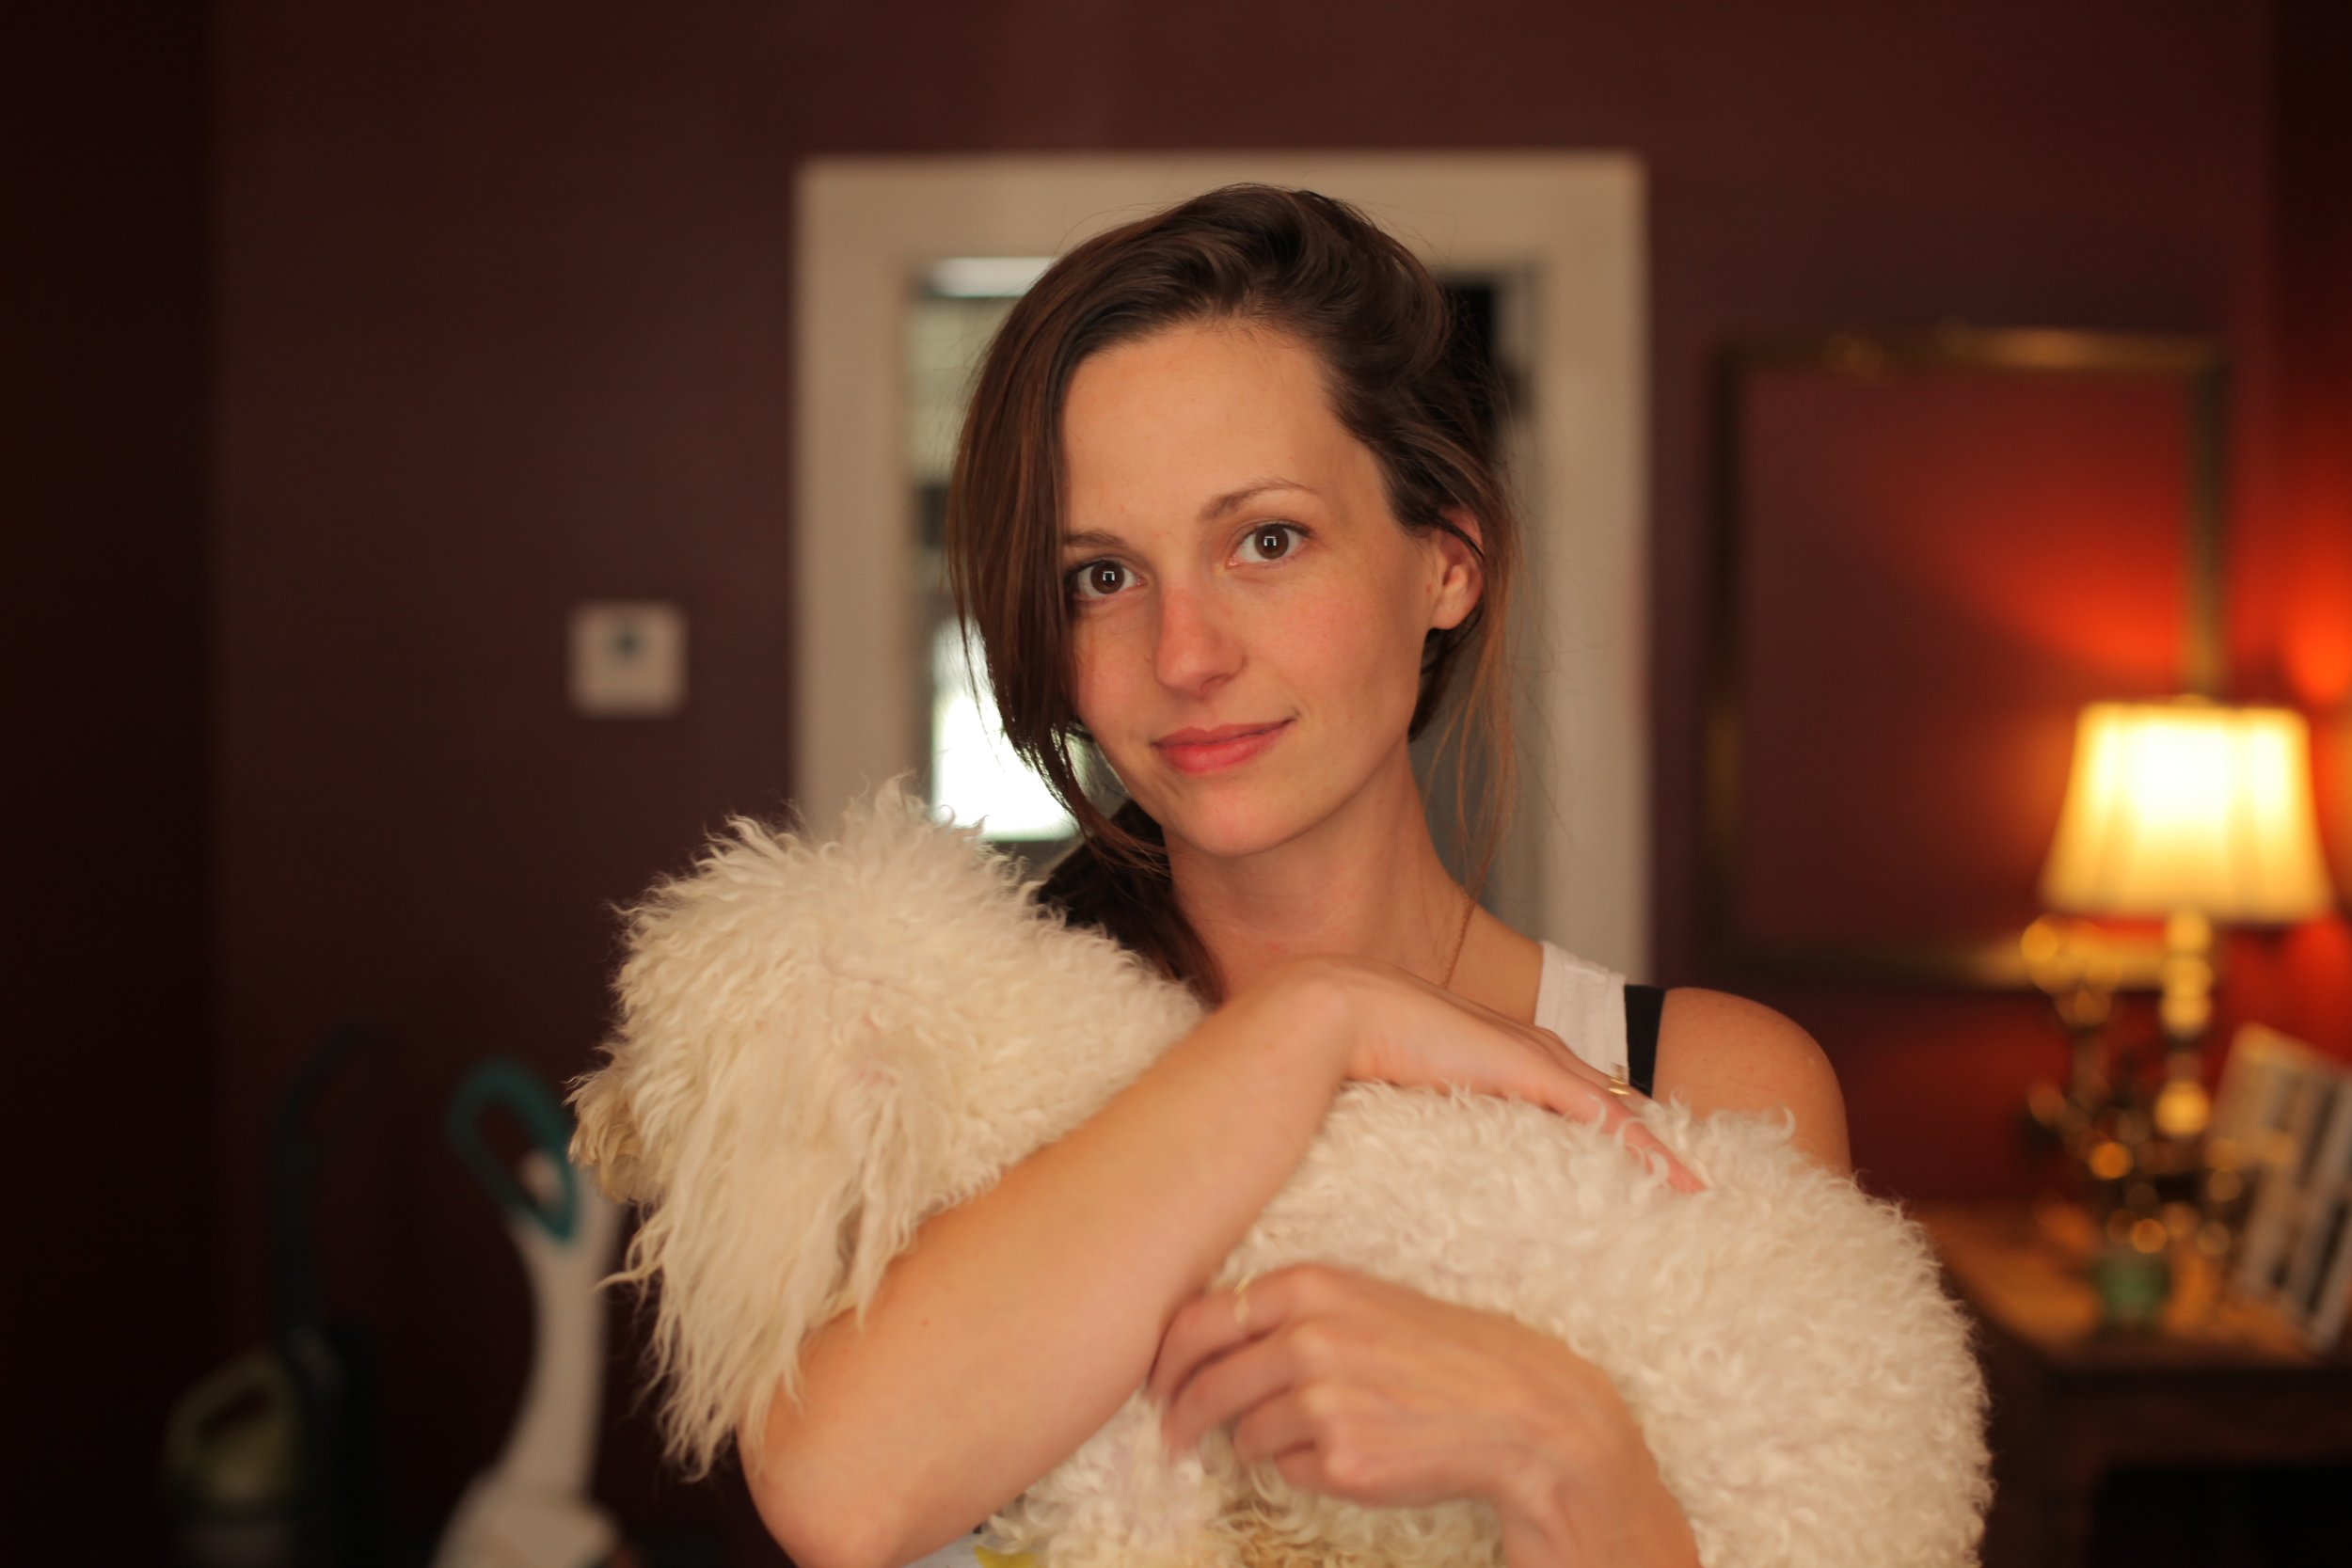 This is what I look like when photographed by a professional in perfect light while I'm a little bit buzzed and holding a dog.